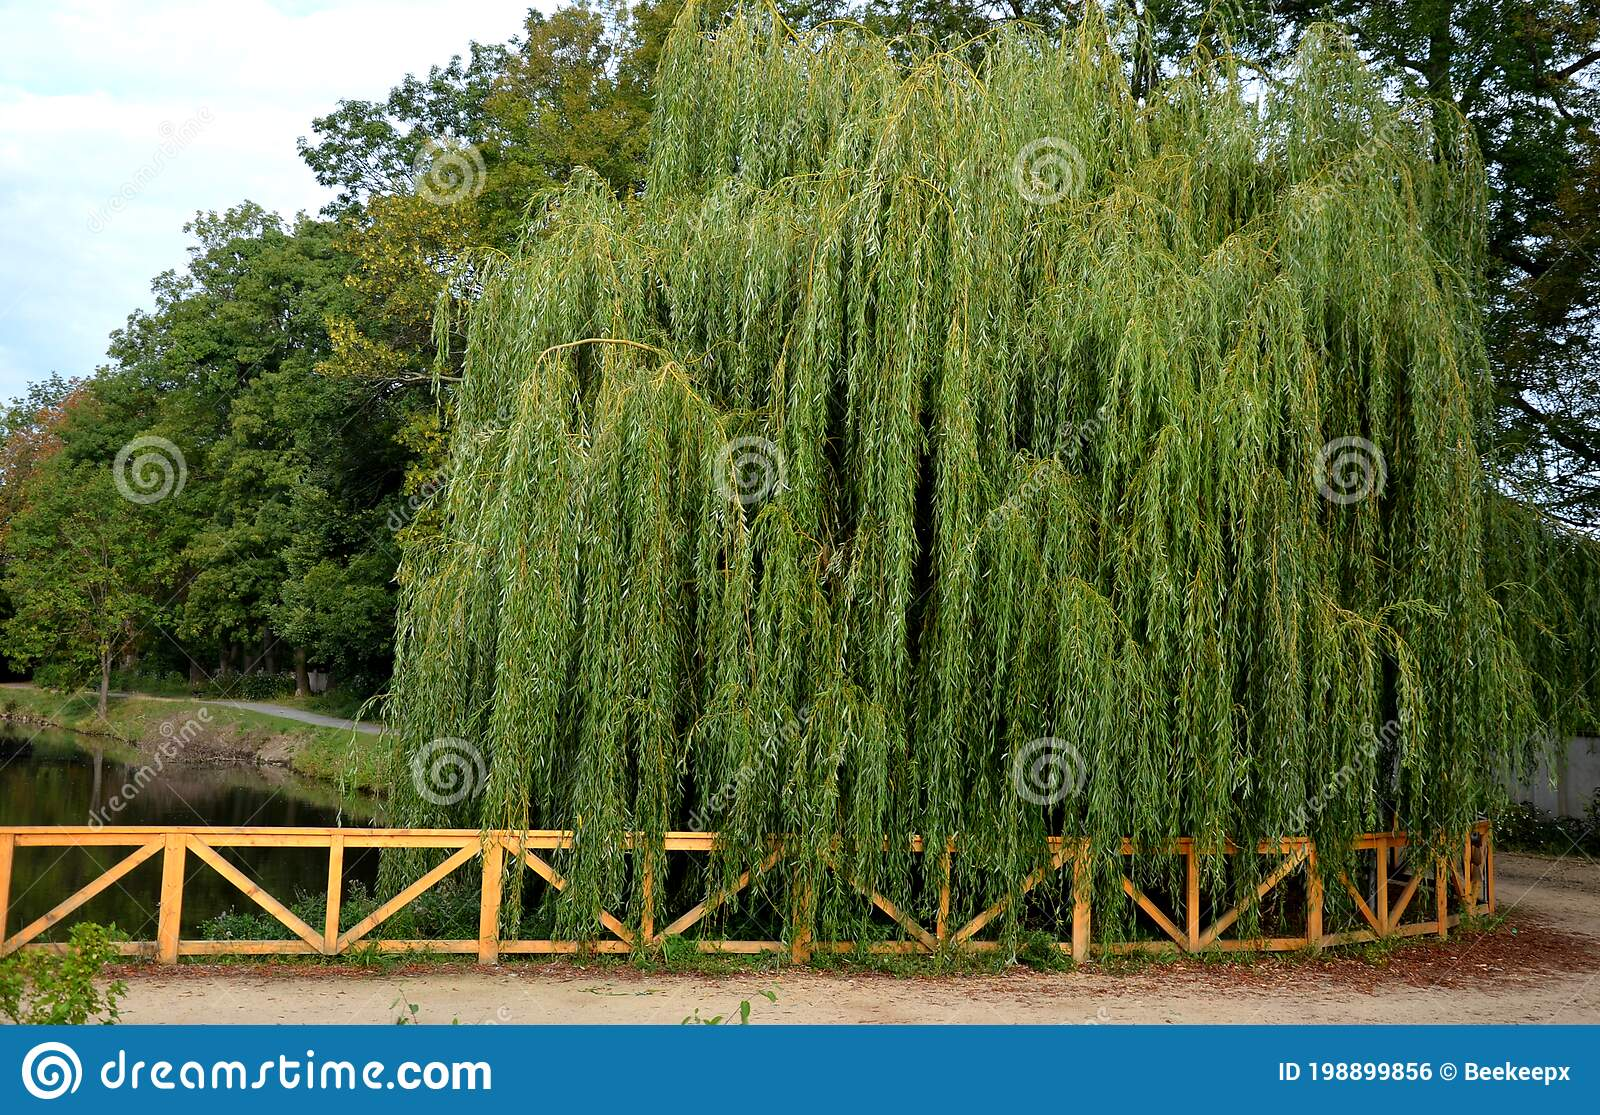 White Willow Is Usually A Massive Fast Growing Tree It Is Also Planted As An Ornamental Tree It Has Overhanging Branches Down T Stock Photo Image Of Garden Ornamental 198899856